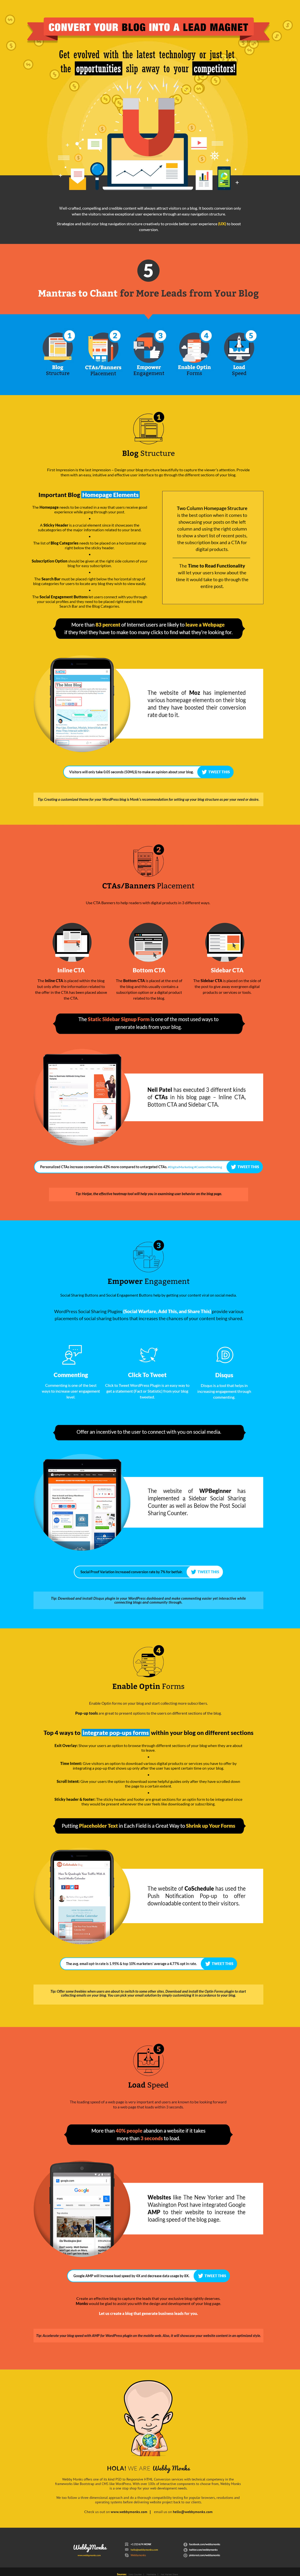 Infographic-five-mantras-for-more-blog-leads-full